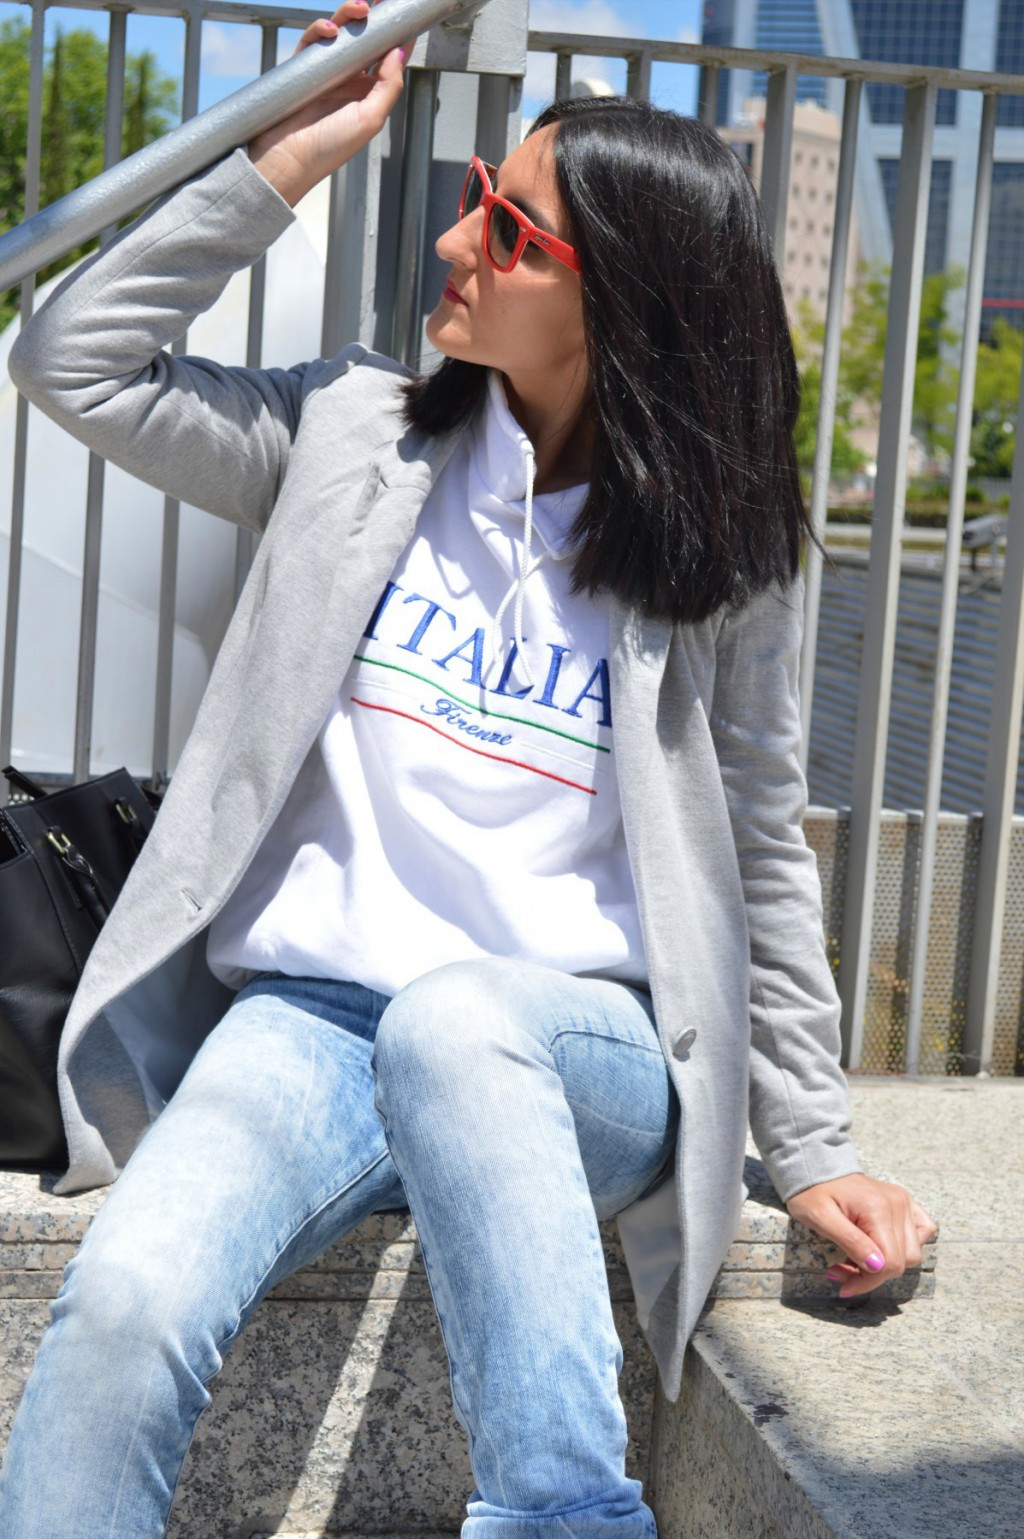 Blazer: Stradivarius (old) Jeans: Salsa jeans Sudadera / sweatshirt: vintage by Italy local store Sneakers: h&m (new) Bolso / bag: h&m Gafas de sol / sunglasses: Wayfarer ray ban